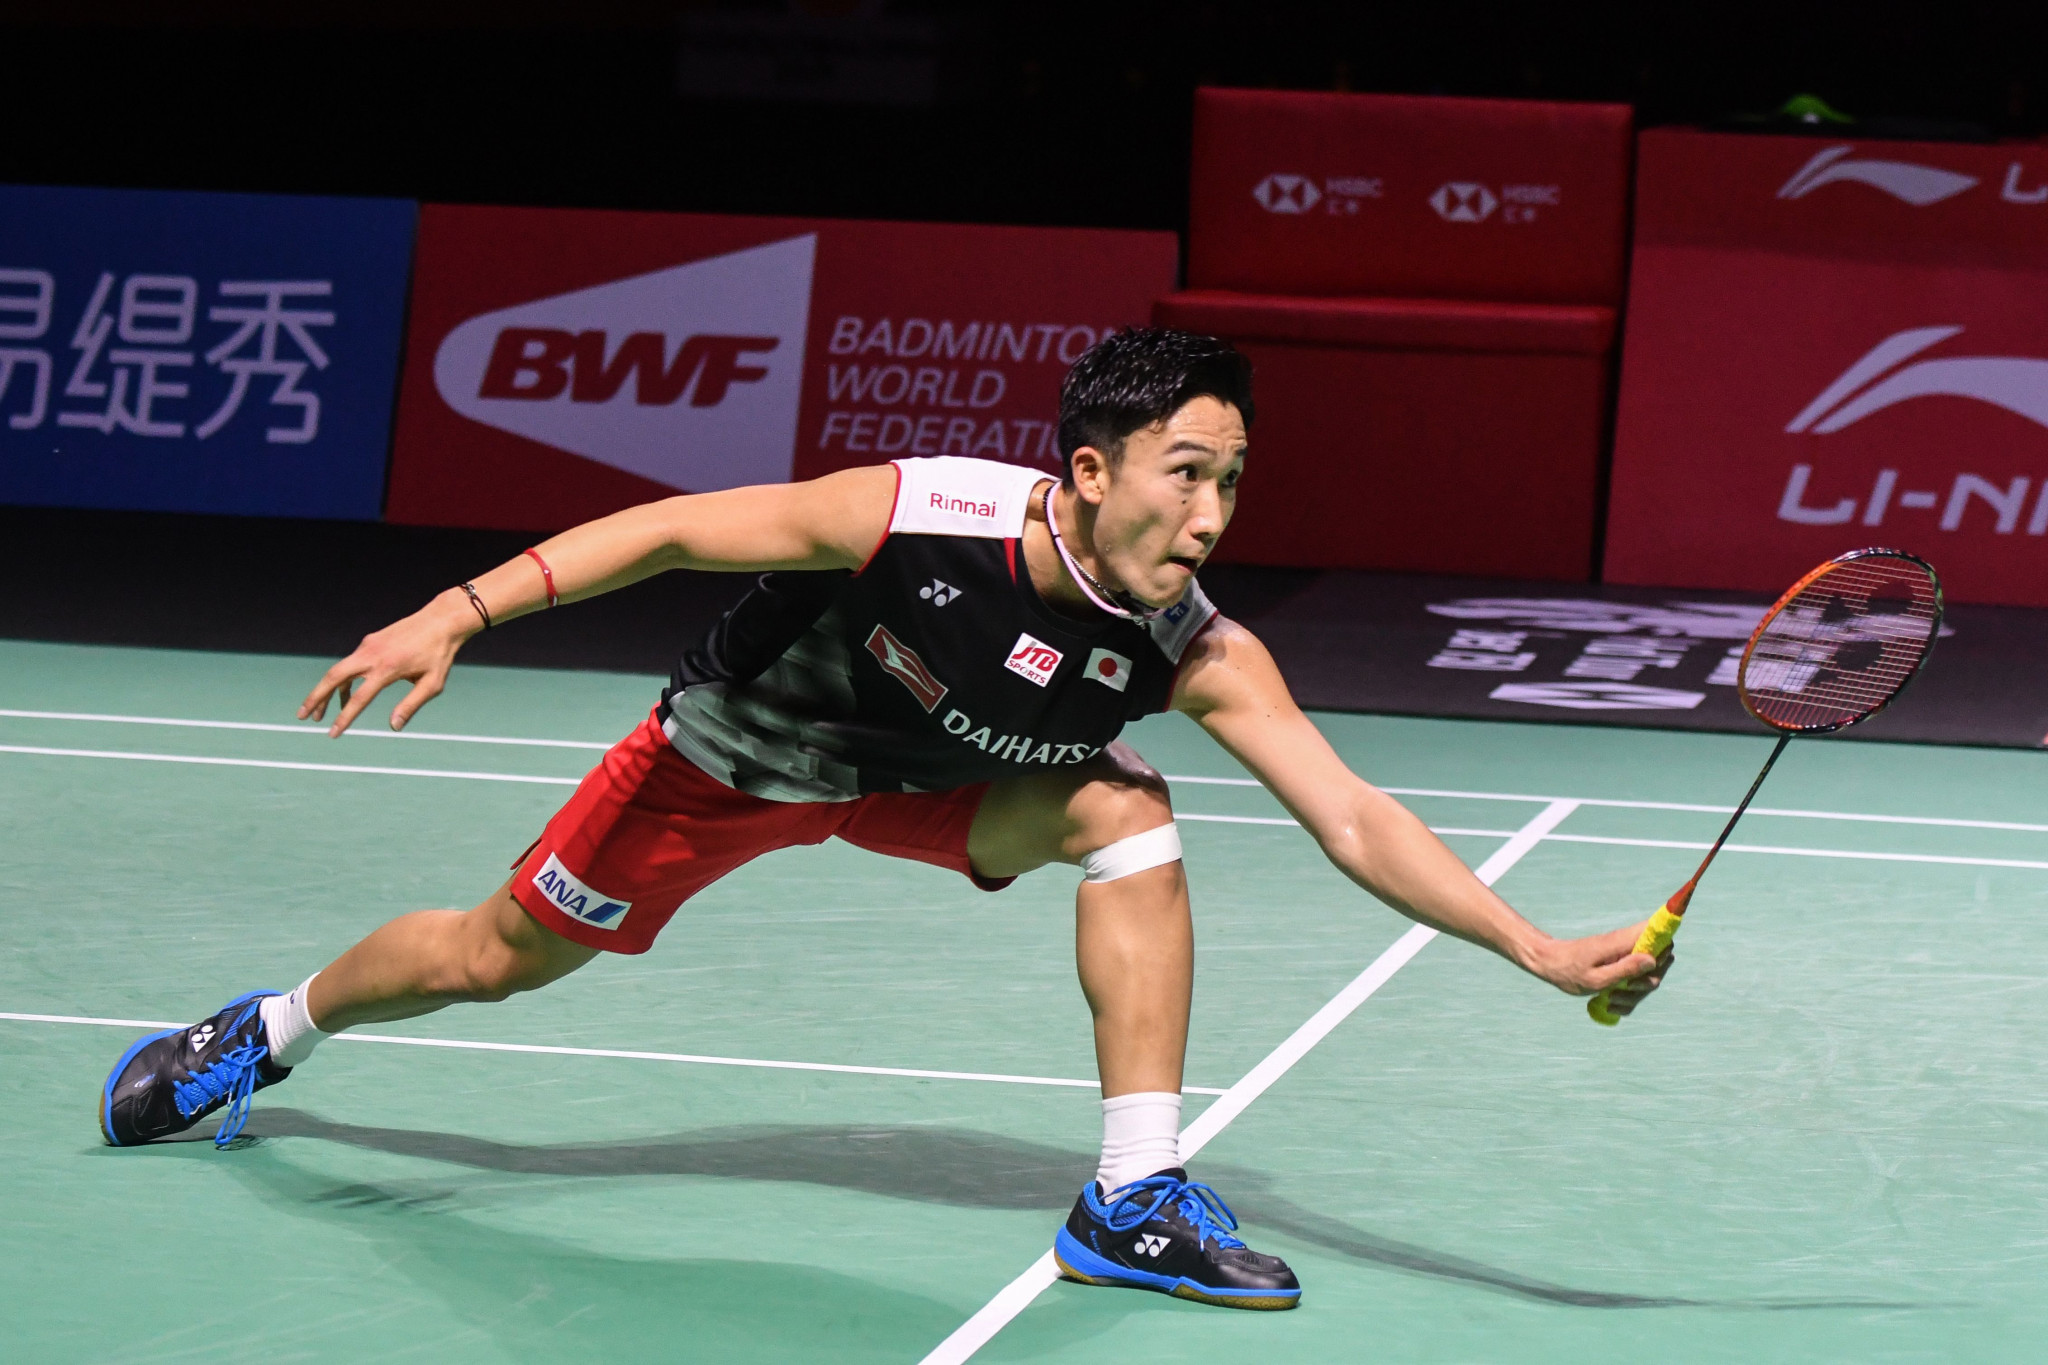 Momota has point to prove at BWF World Tour Finals in Guangzhou